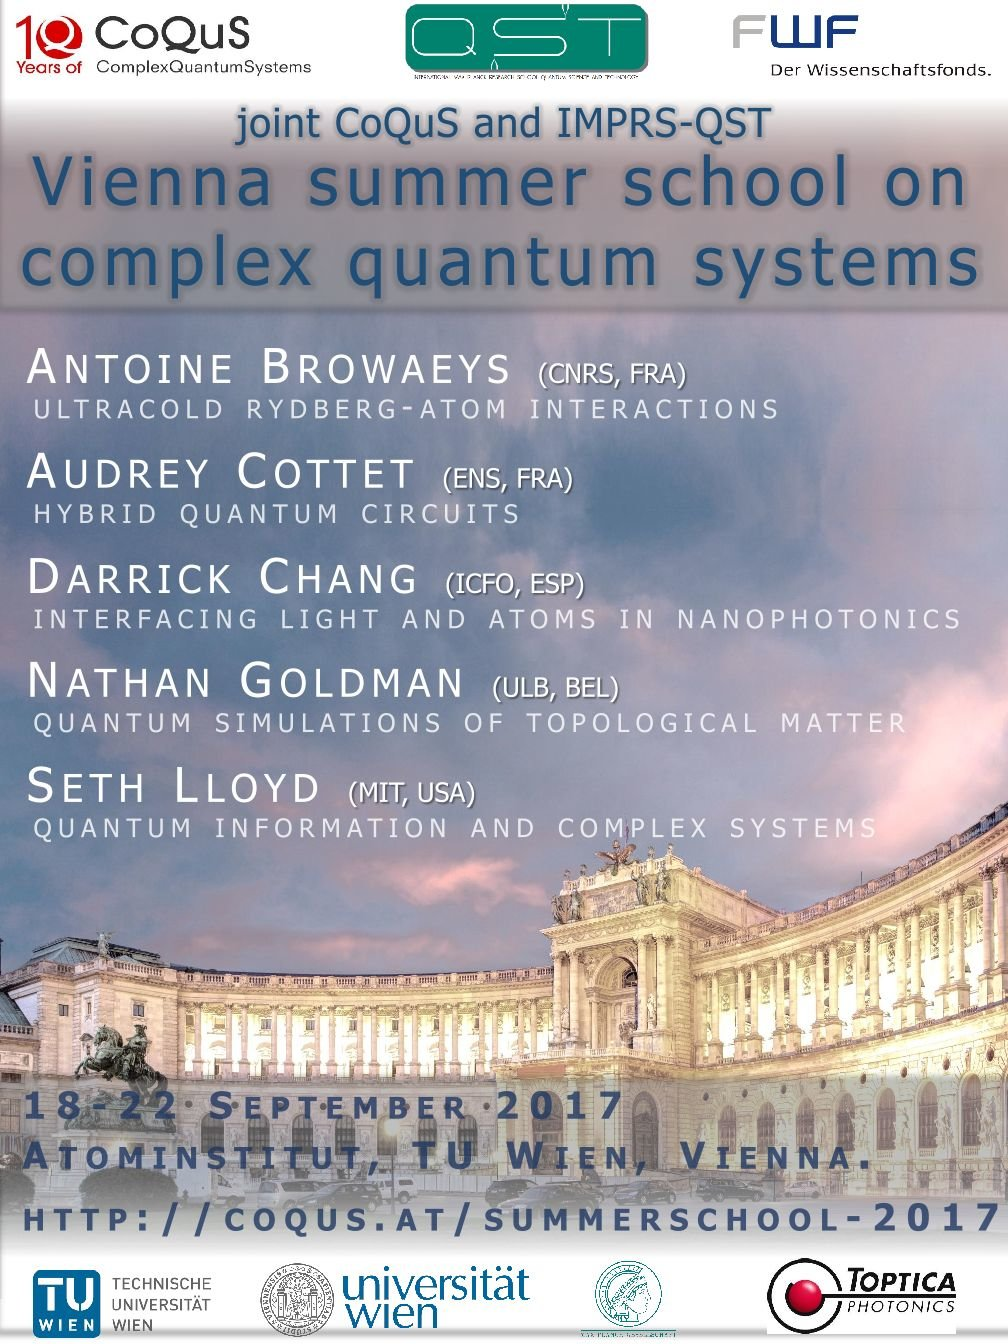 September 18th - 22nd, 2017<br /><br /><strong>Joint CoQuS and IMPRS-QST Summer School on Complex Quantum Systems</strong><br /><strong>Atominstitut, TU Wien, Vienna</strong>